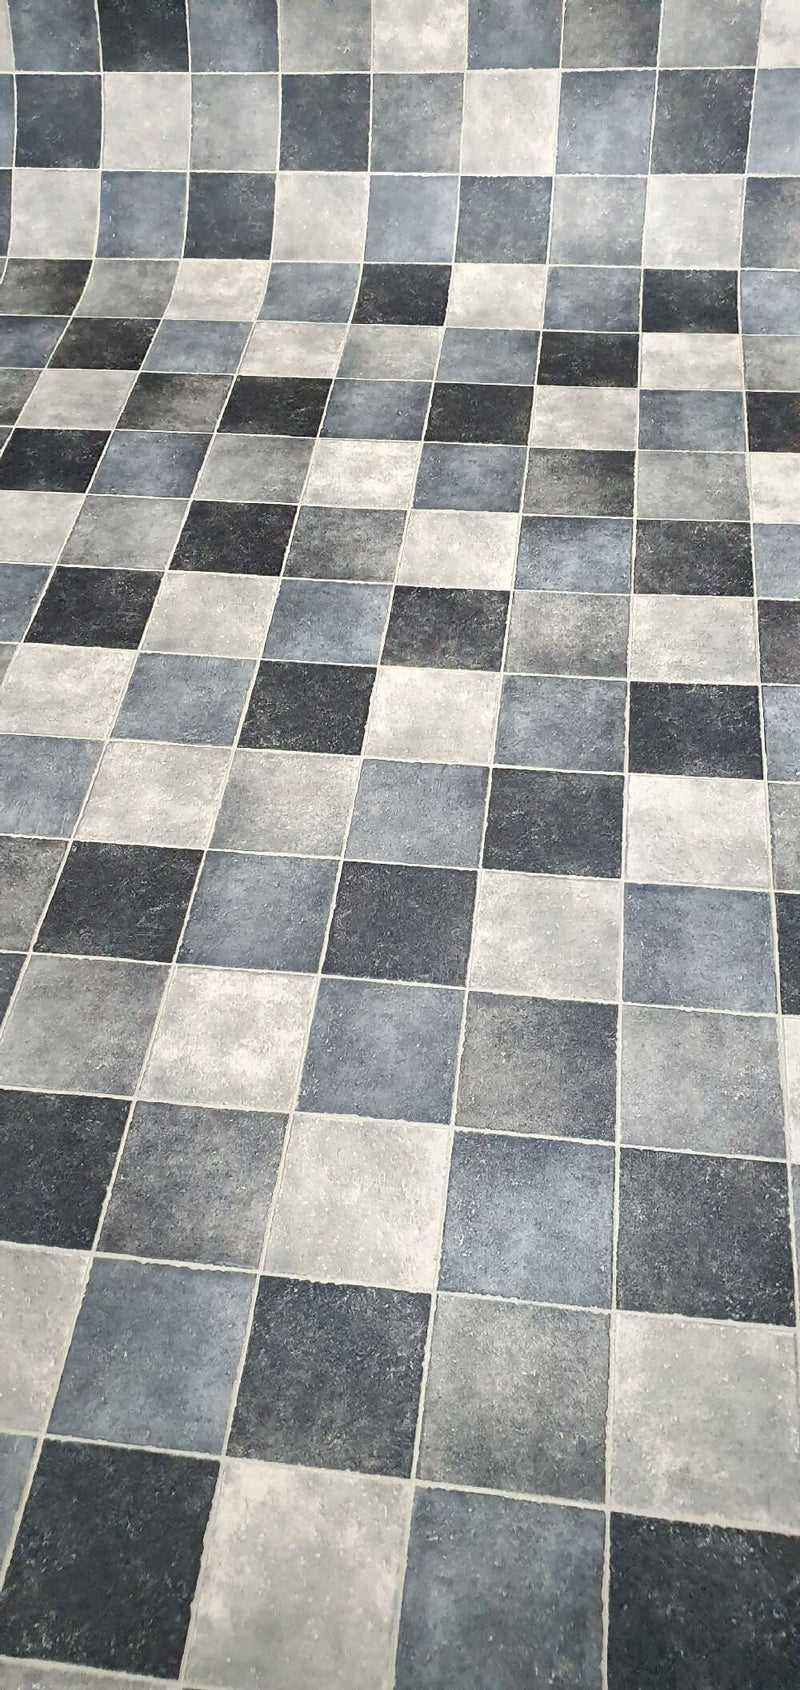 Pompei D 578 Vinyl Lino Flooring 4m Width SQM Price is £7.95 - Decoridea.co.uk